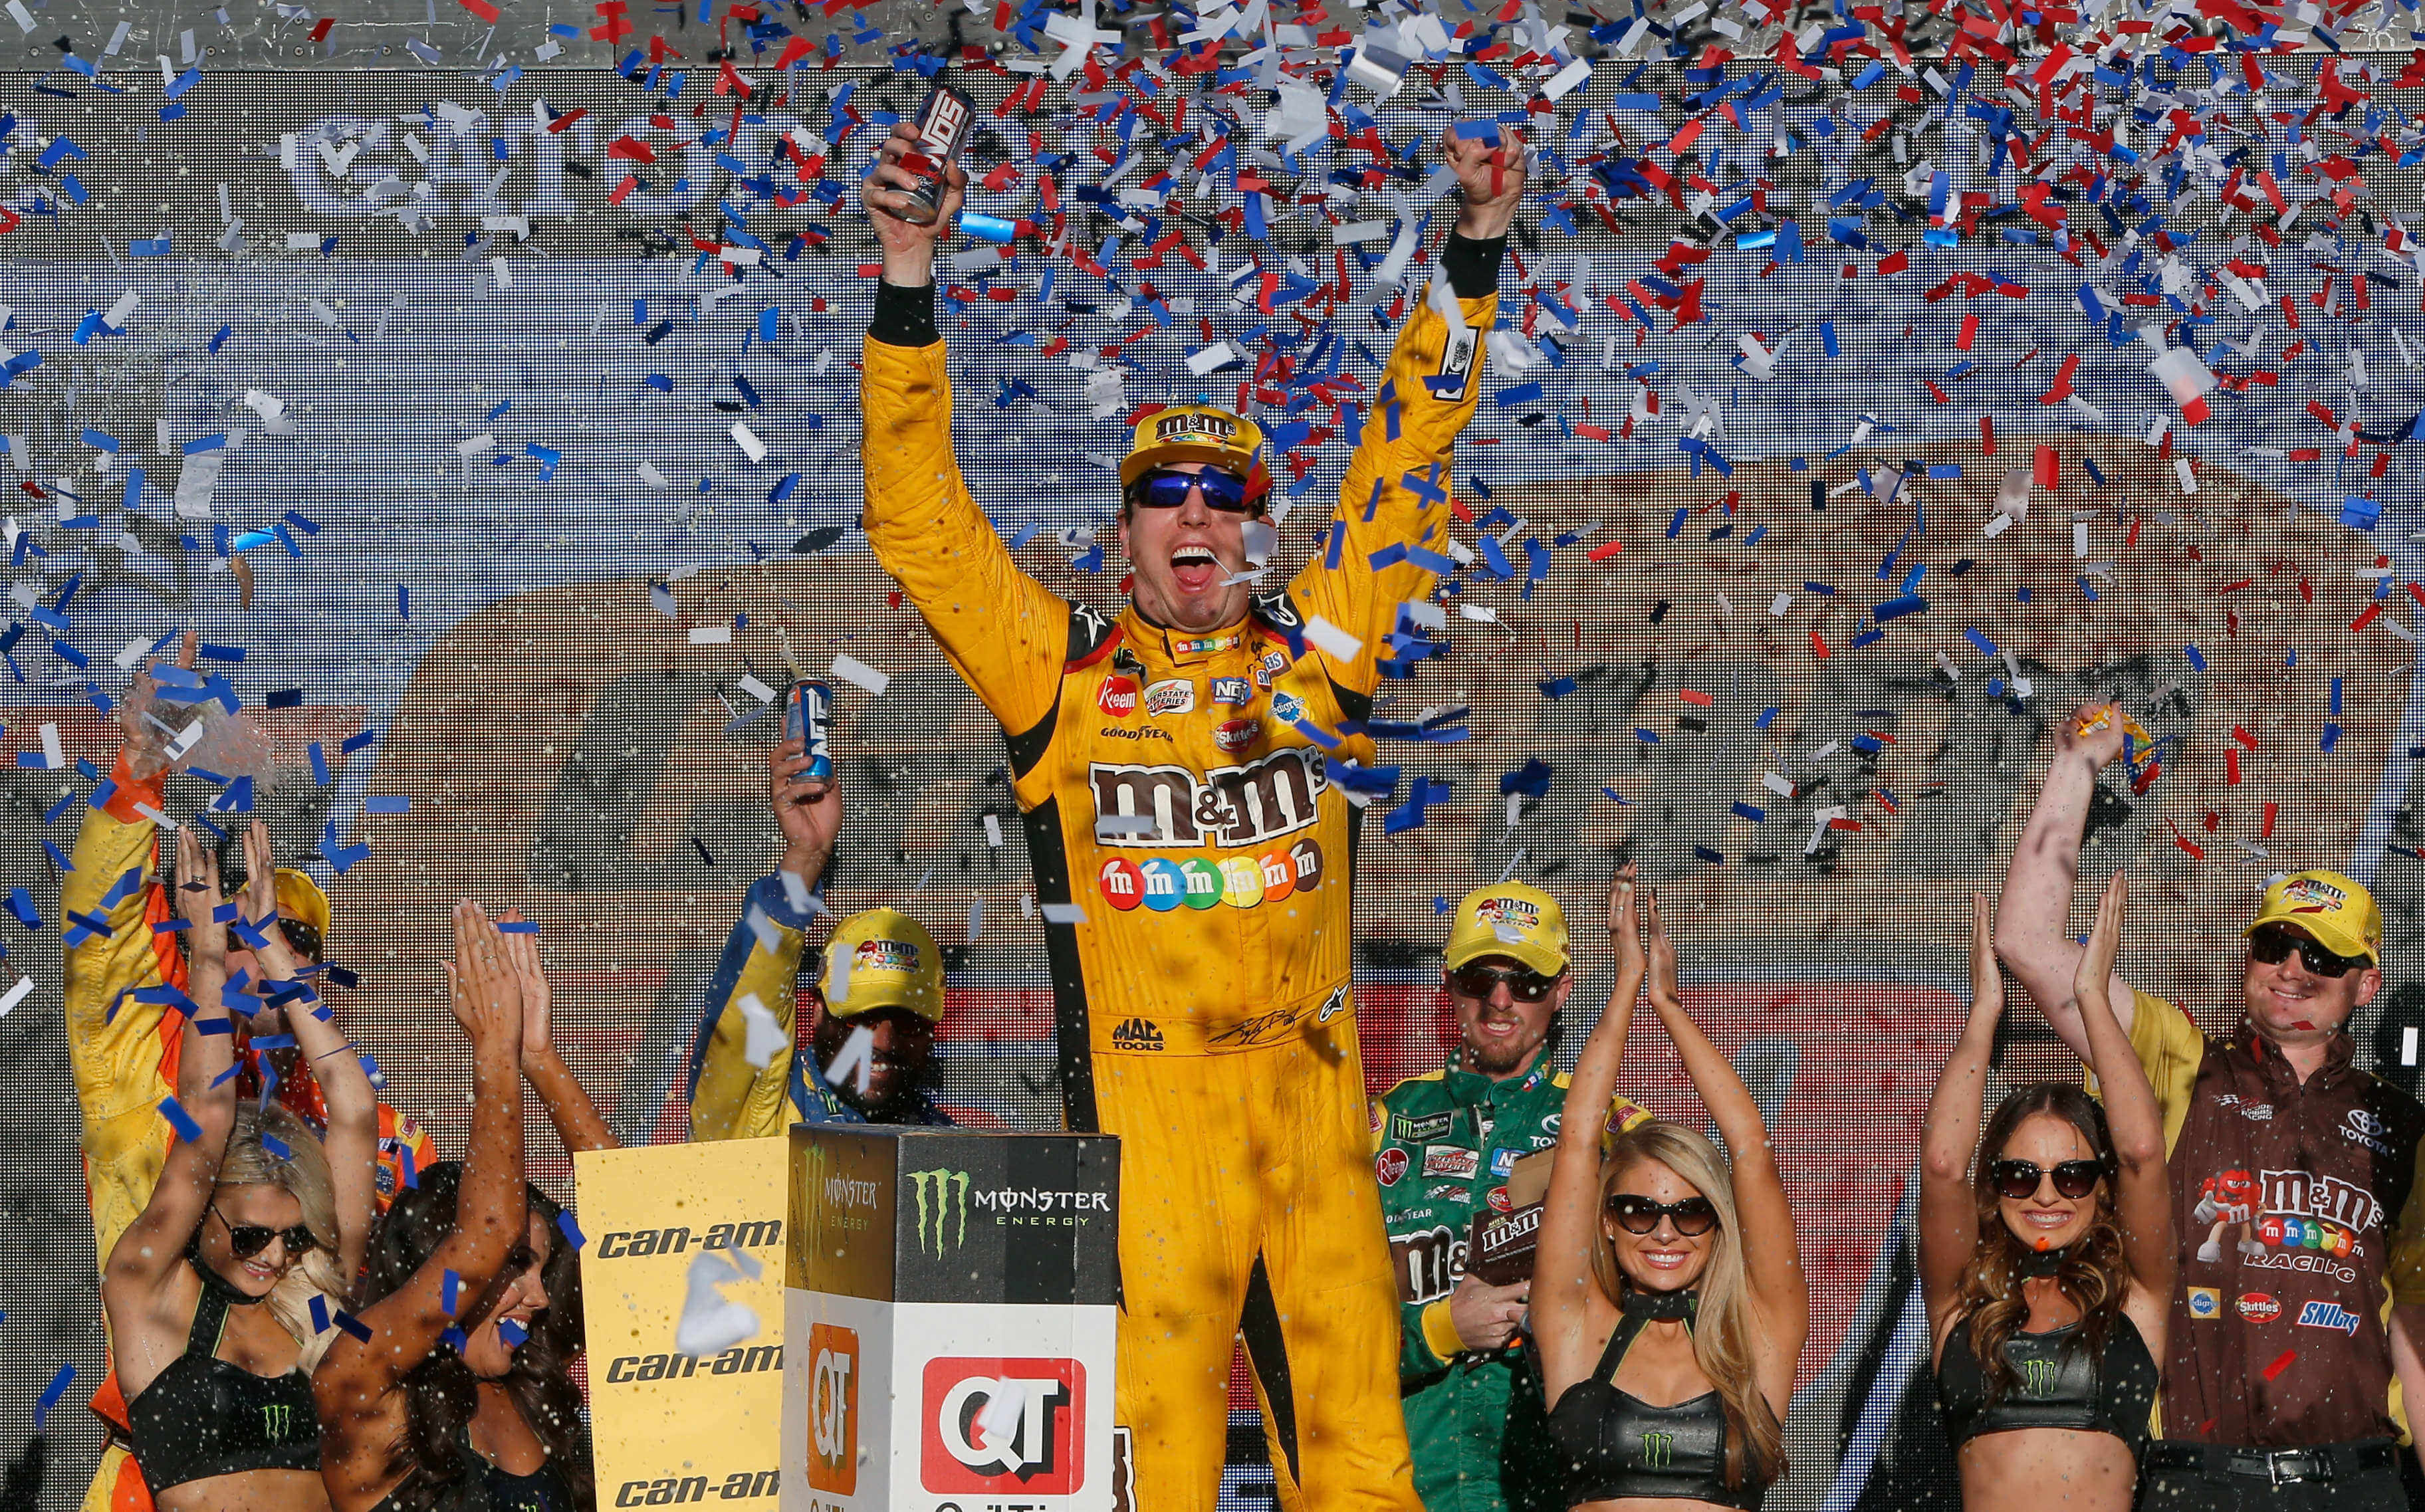 Kyle Busch and the Monster Energy Girls in victory lane at ISM Raceway - NASCAR Cup Series